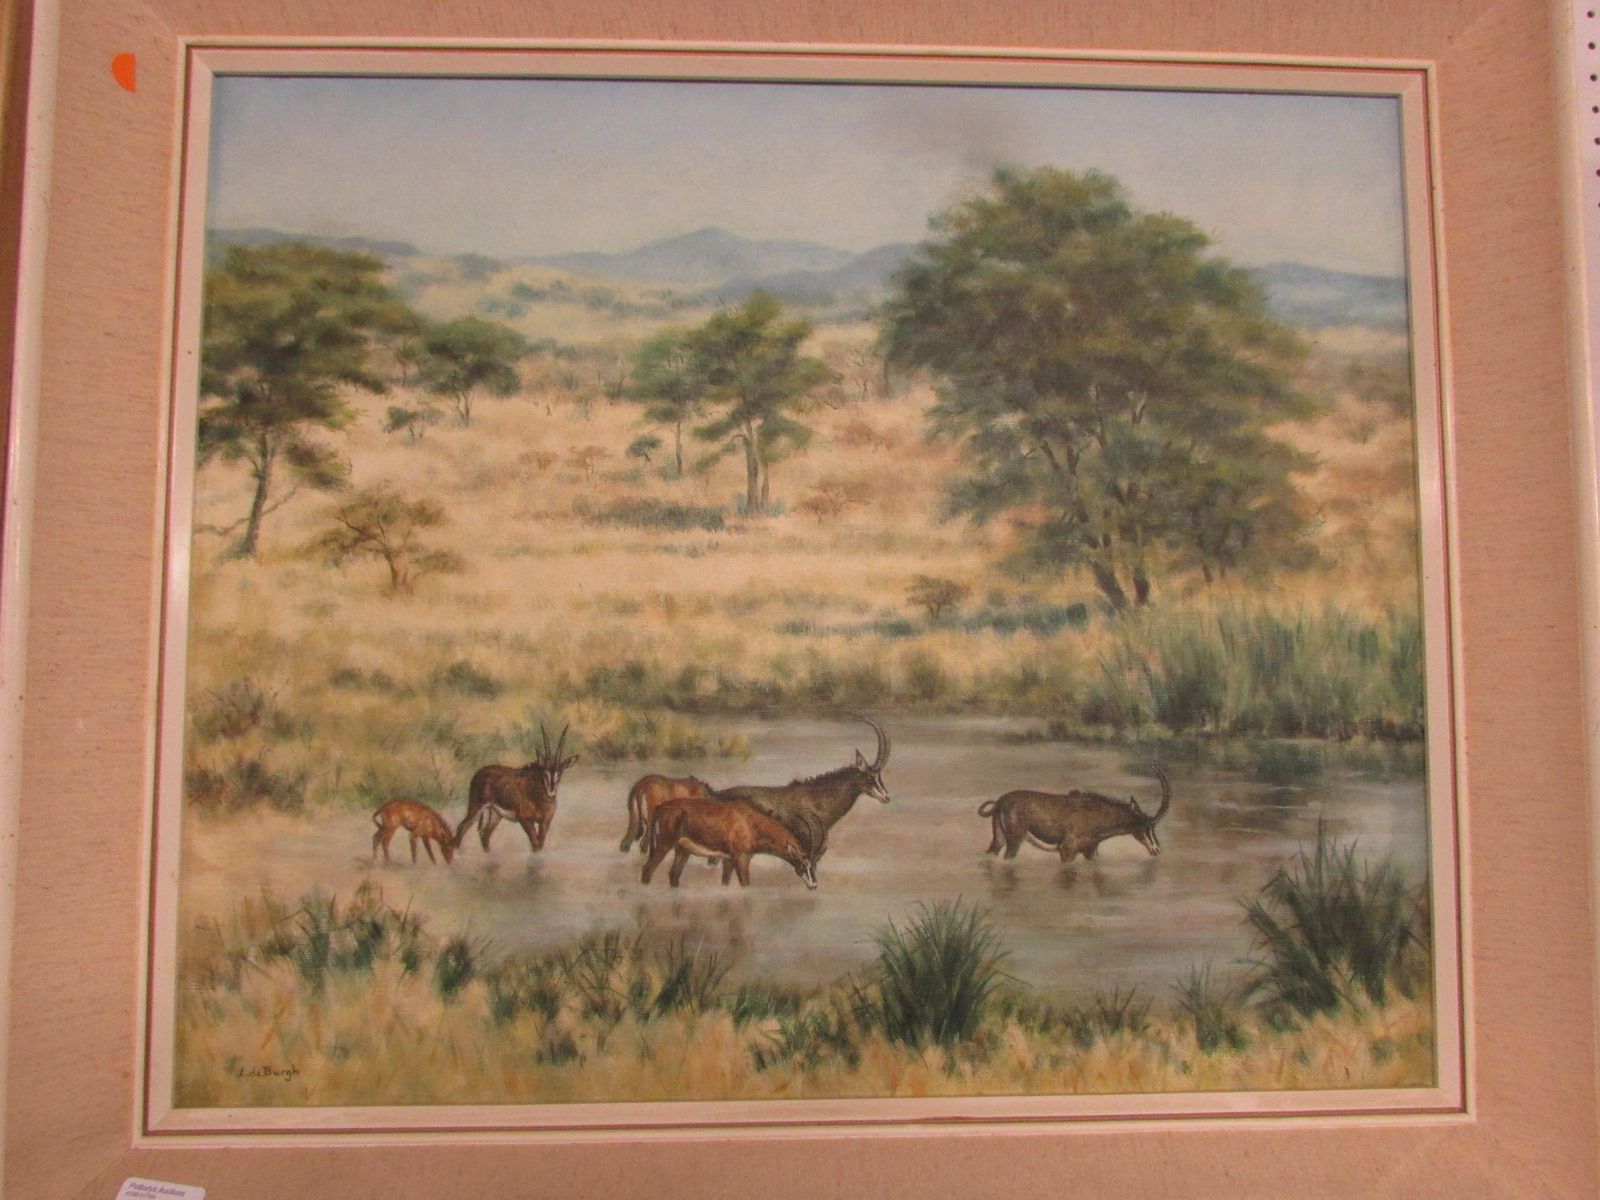 Lot 6 - African landscape with sable antelope, oil on canvas, signed L de Burgh lower left, (49.5cm x 60cm),